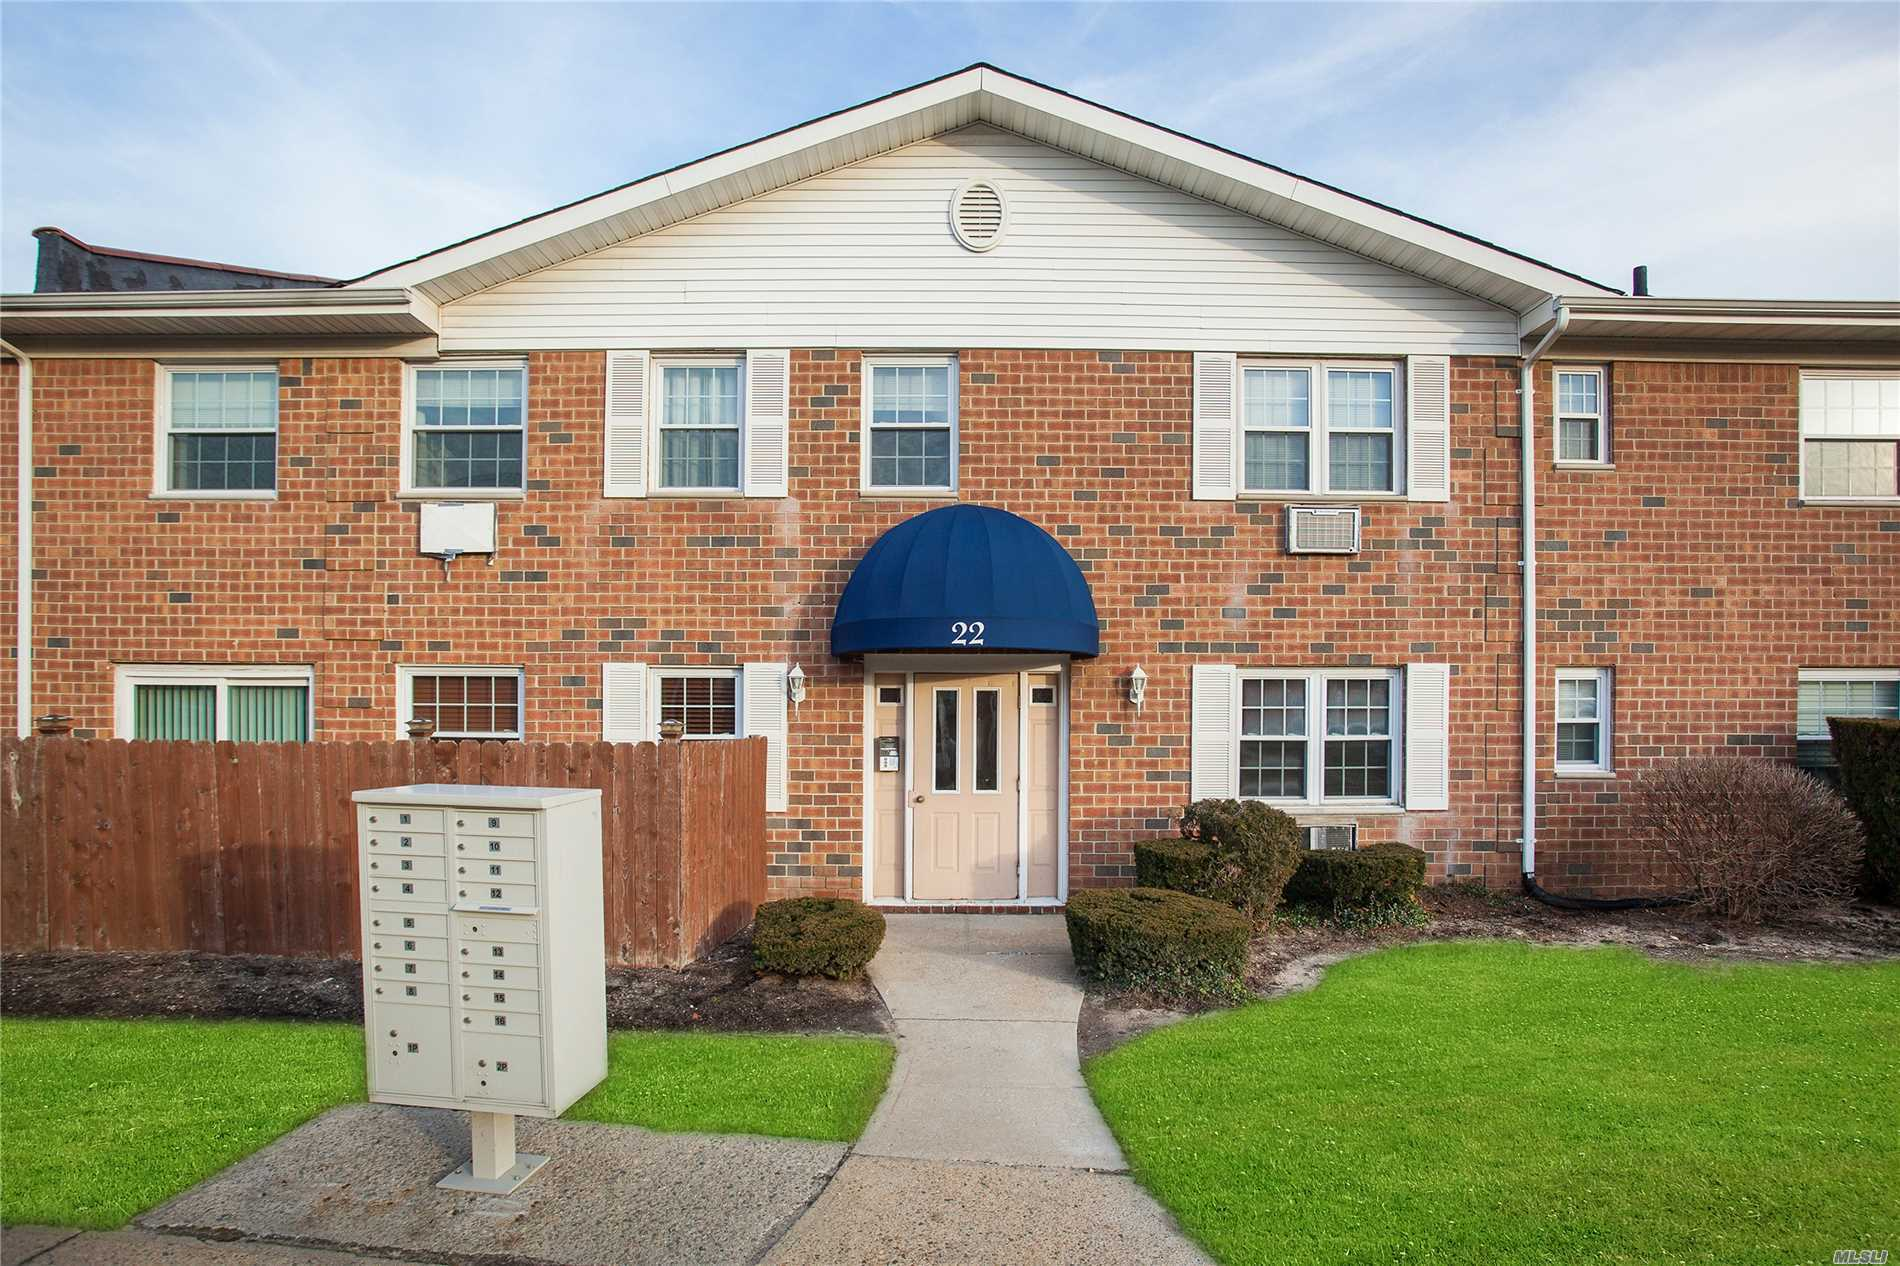 Beautifully Maintained Unit Features Updated Kitchen, Updated Bath, Light And Bright, Spacious Rooms. Executive Unit. Close To All Shopping, College, Hospital, Etc.